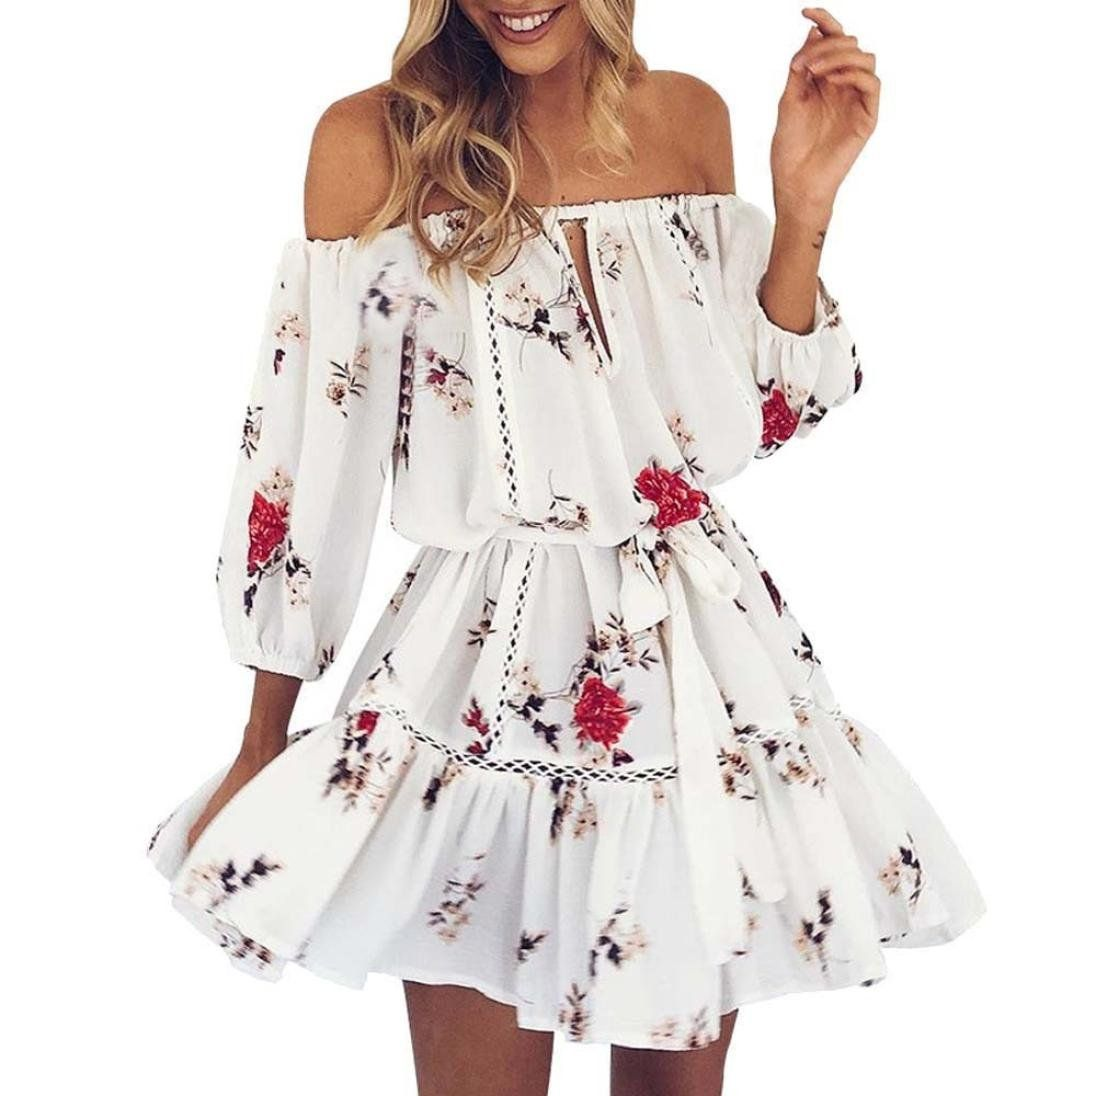 f5484774b23 TOTOD Womens Bud Summer Off Shoulder Three Quarter Floral Print Sundress  Party Beach Short Mini Dress at Amazon Women s Clothing store